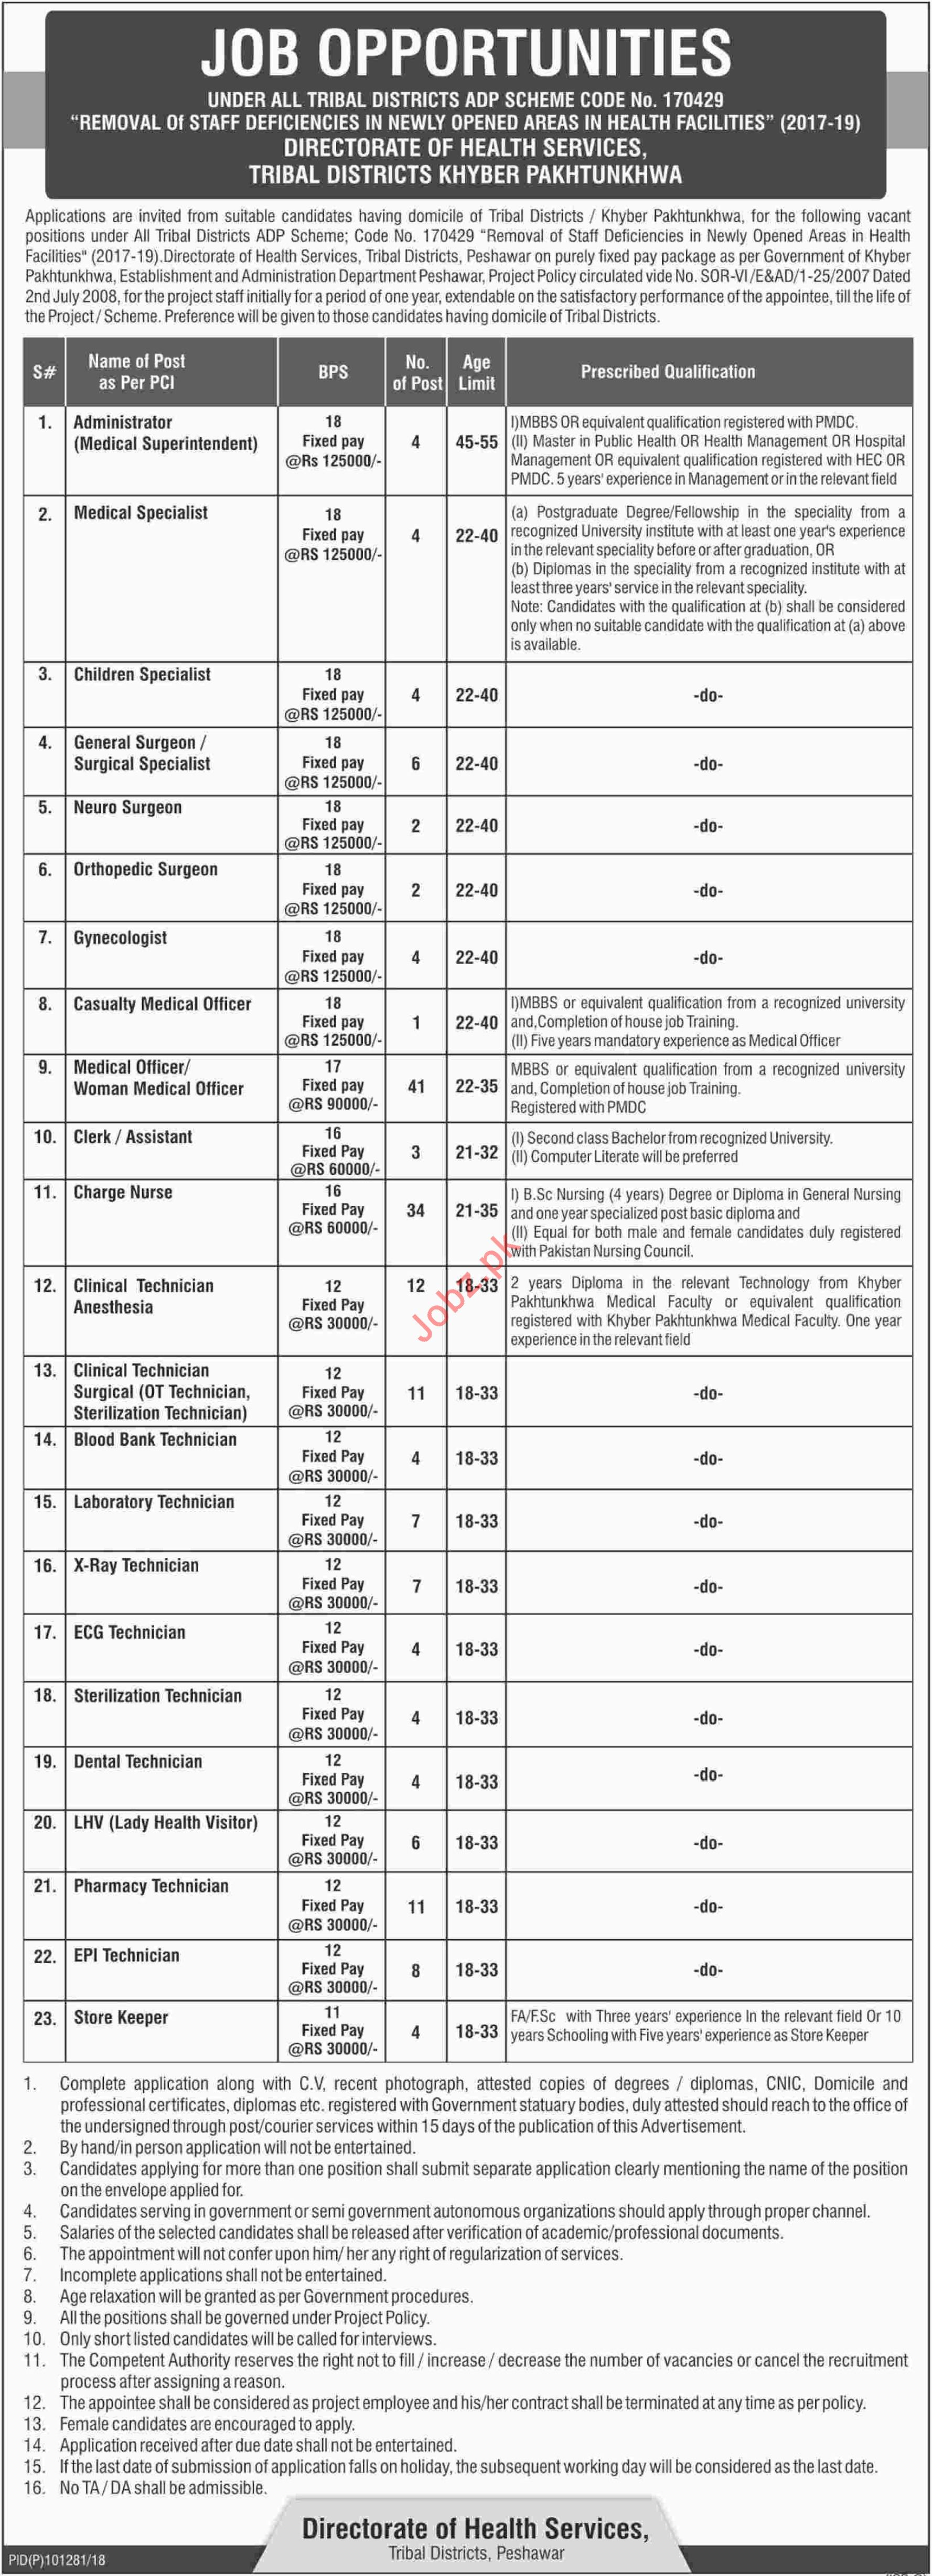 Directorate of Health Services Tribal Districts Jobs 2018